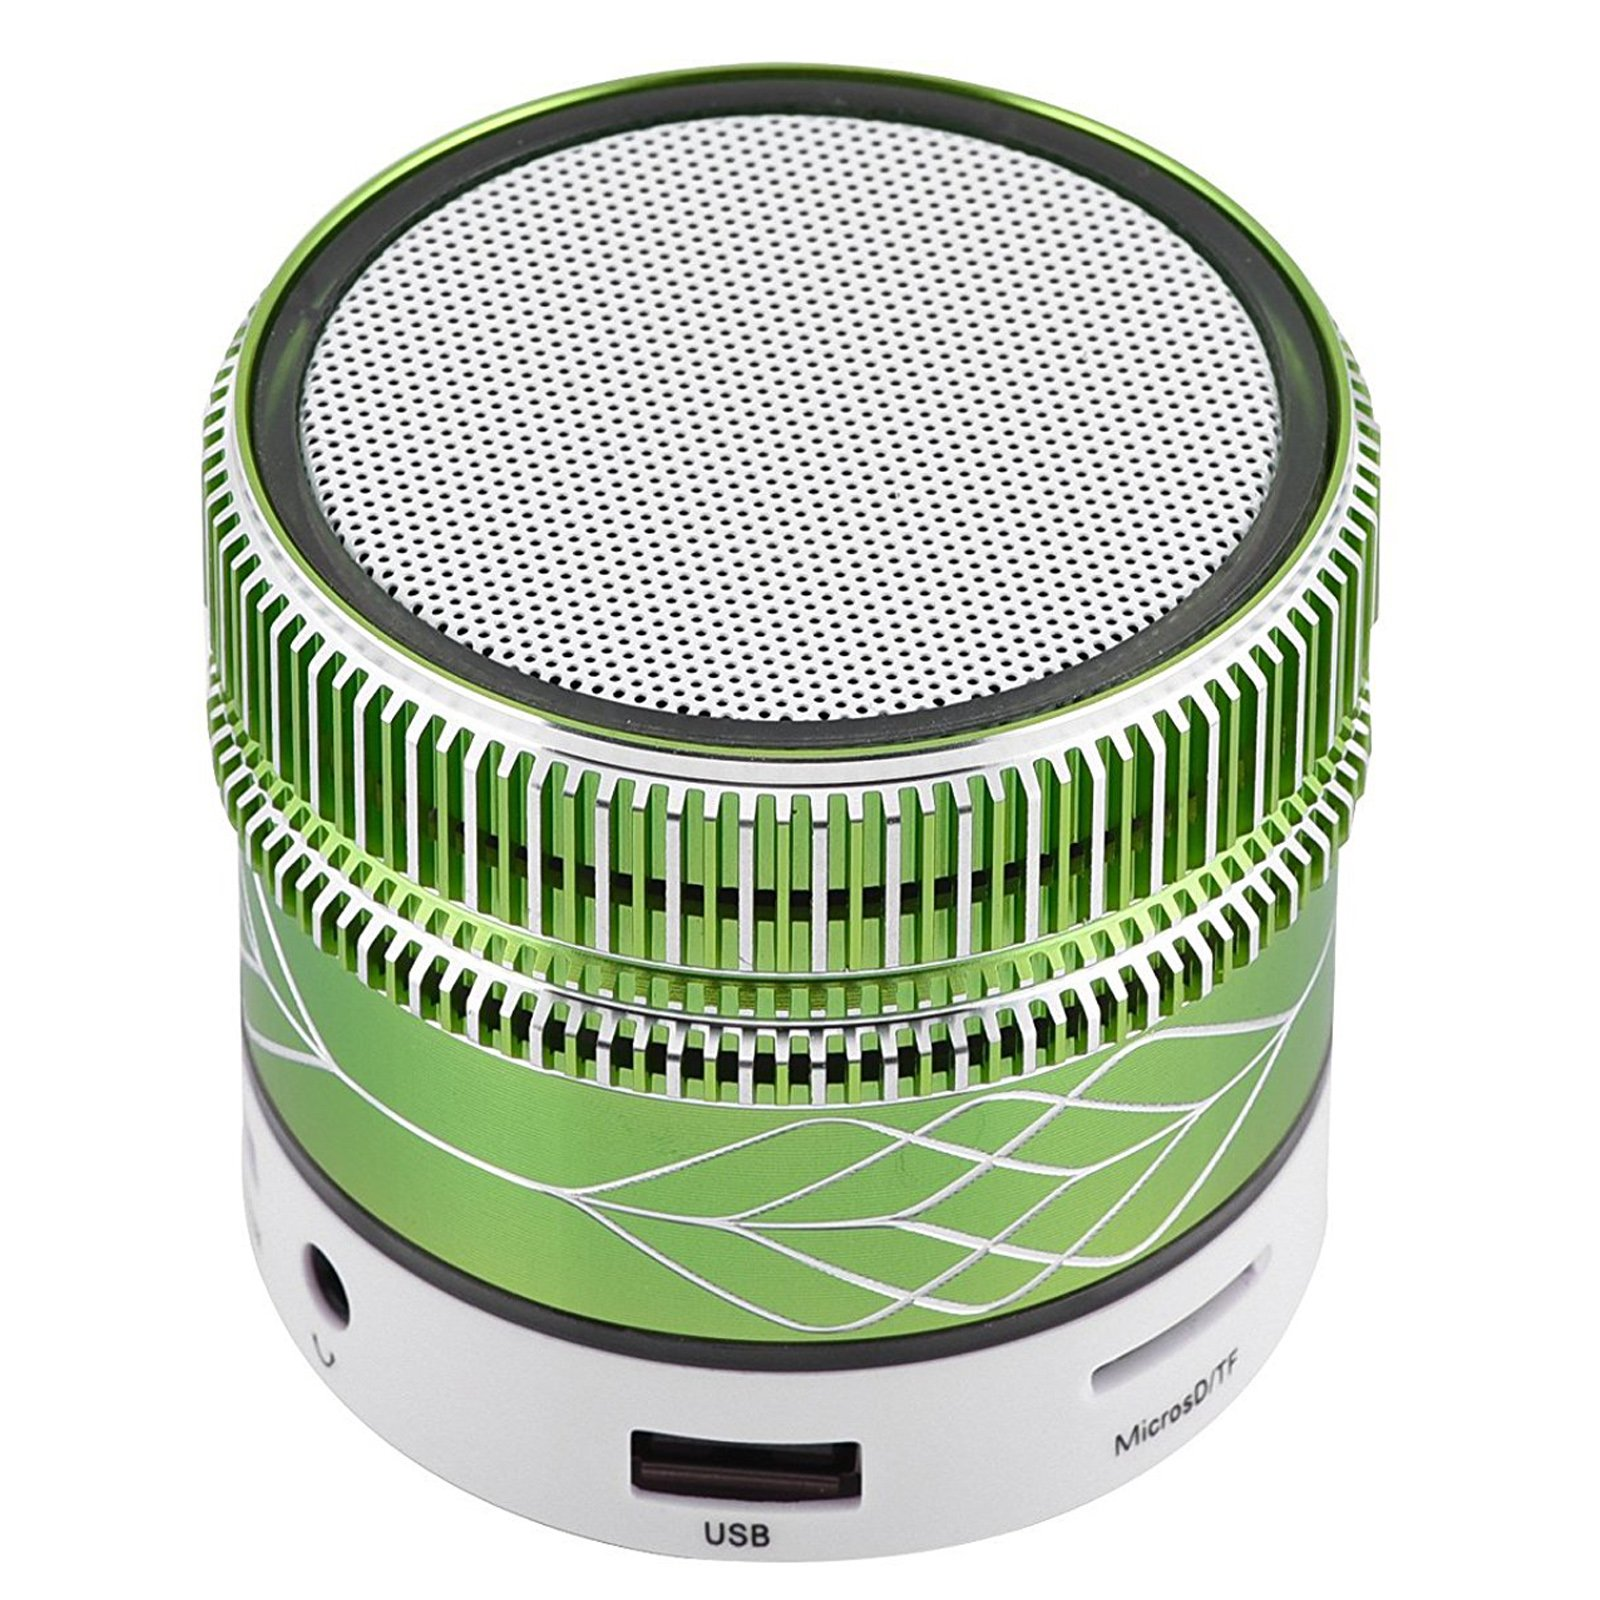 Small Mini Bluetooth Speaker LED Light Music Player Desktop Speaker Support TF Card Outdoors Sport Speaker for Android Samsung Galaxy S4 S5 S6 S7 Edge S8 S9 iPhone 8 7 6 6S 5S 5C Huawei Laptops Green